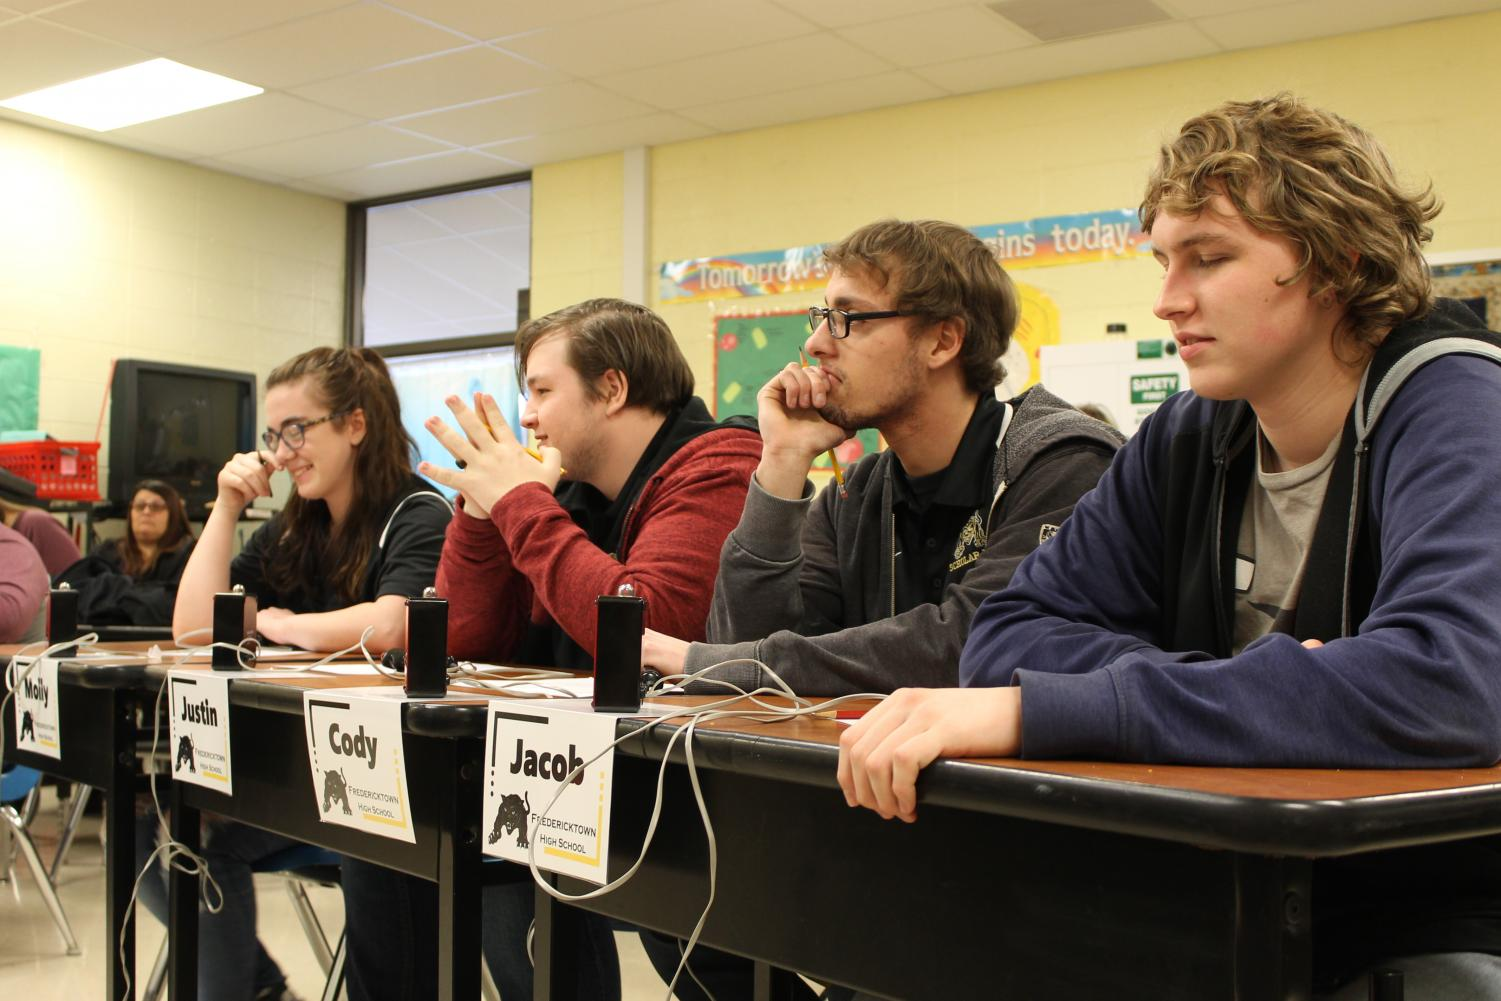 Molly Sikes, Justin Rhodes, Cody Phillips, and Jacob Mungle at the home Scholar Bowl meet